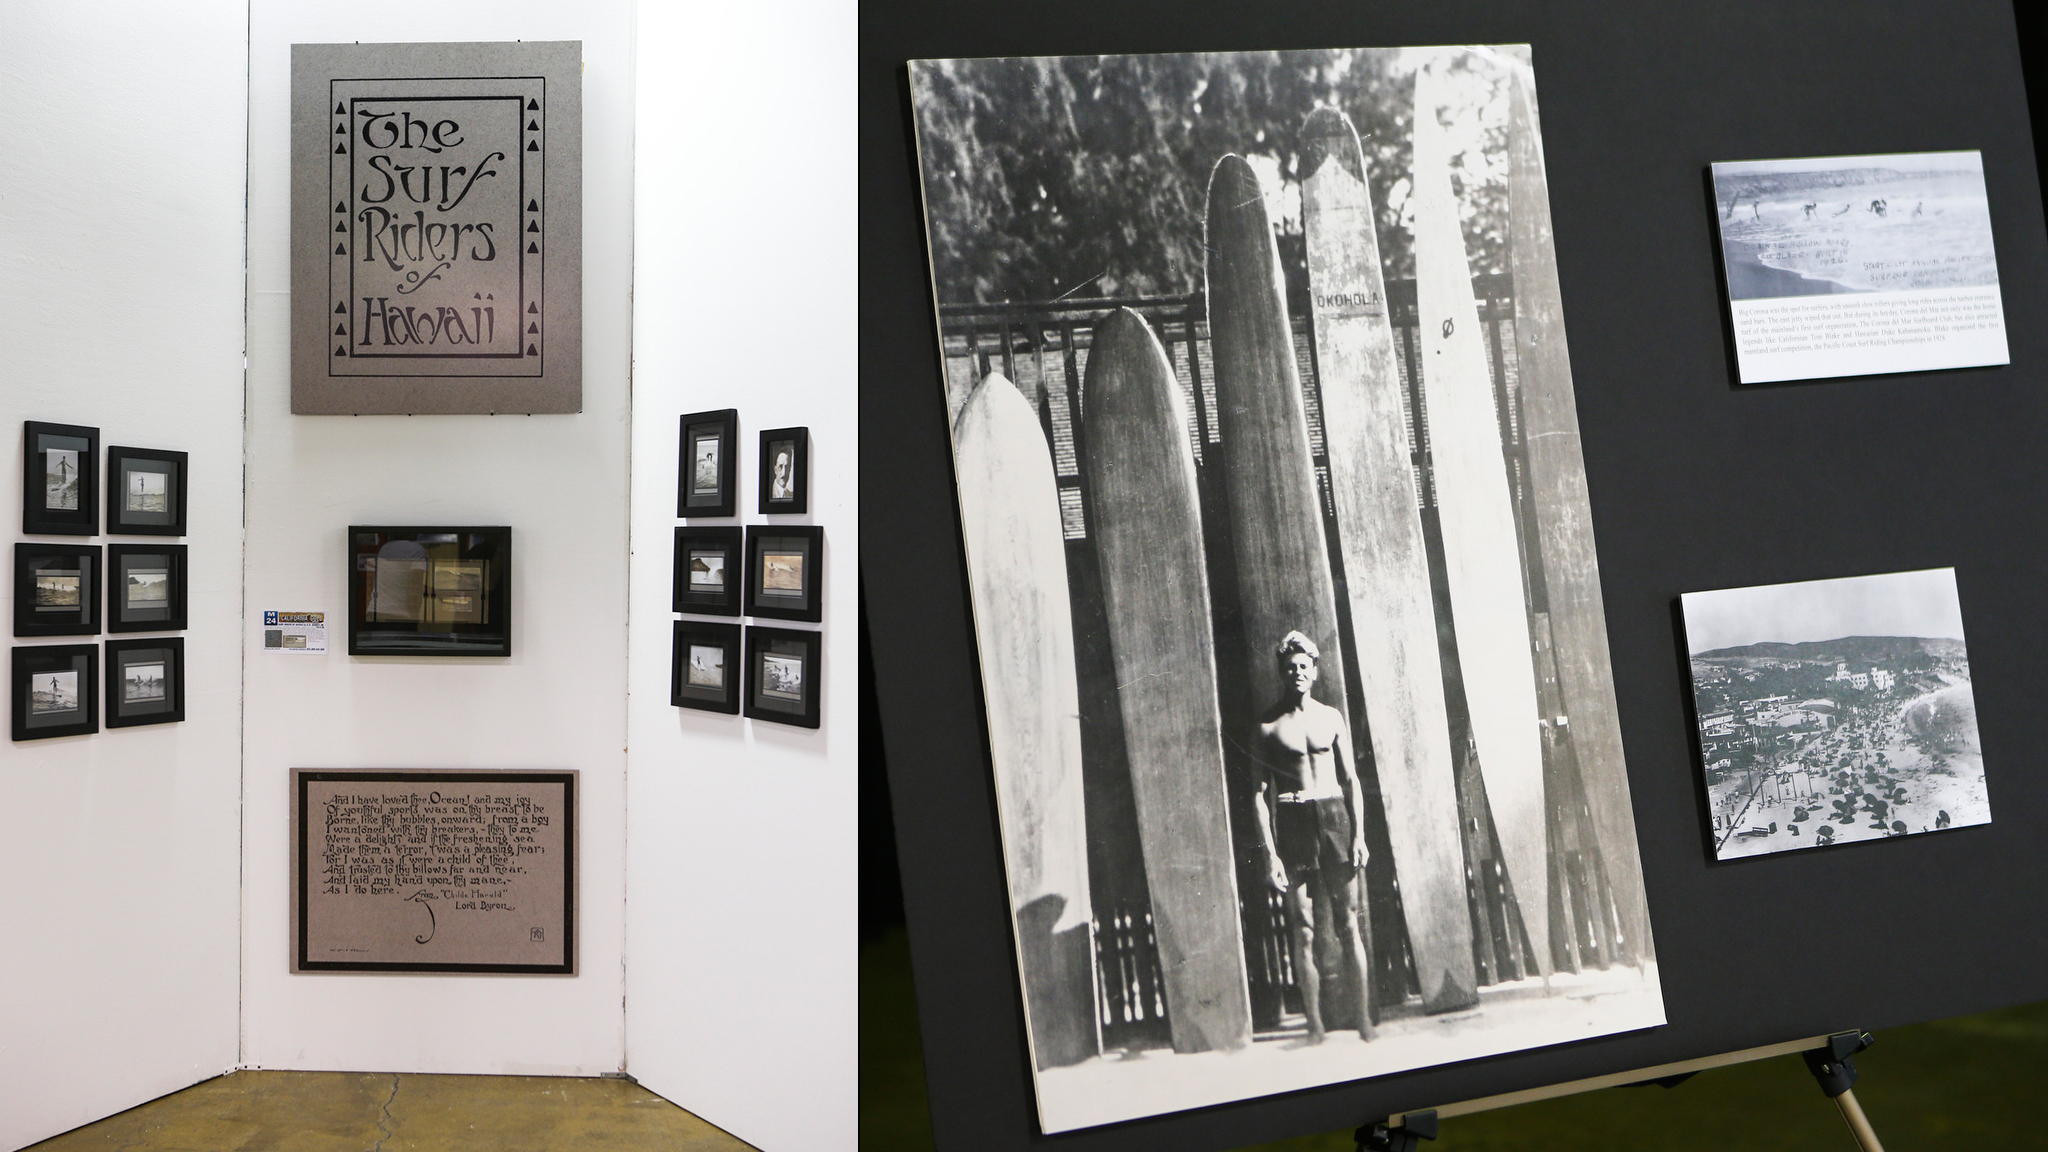 A.R. Gurrey Jr.'s Surfriders of Hawaii